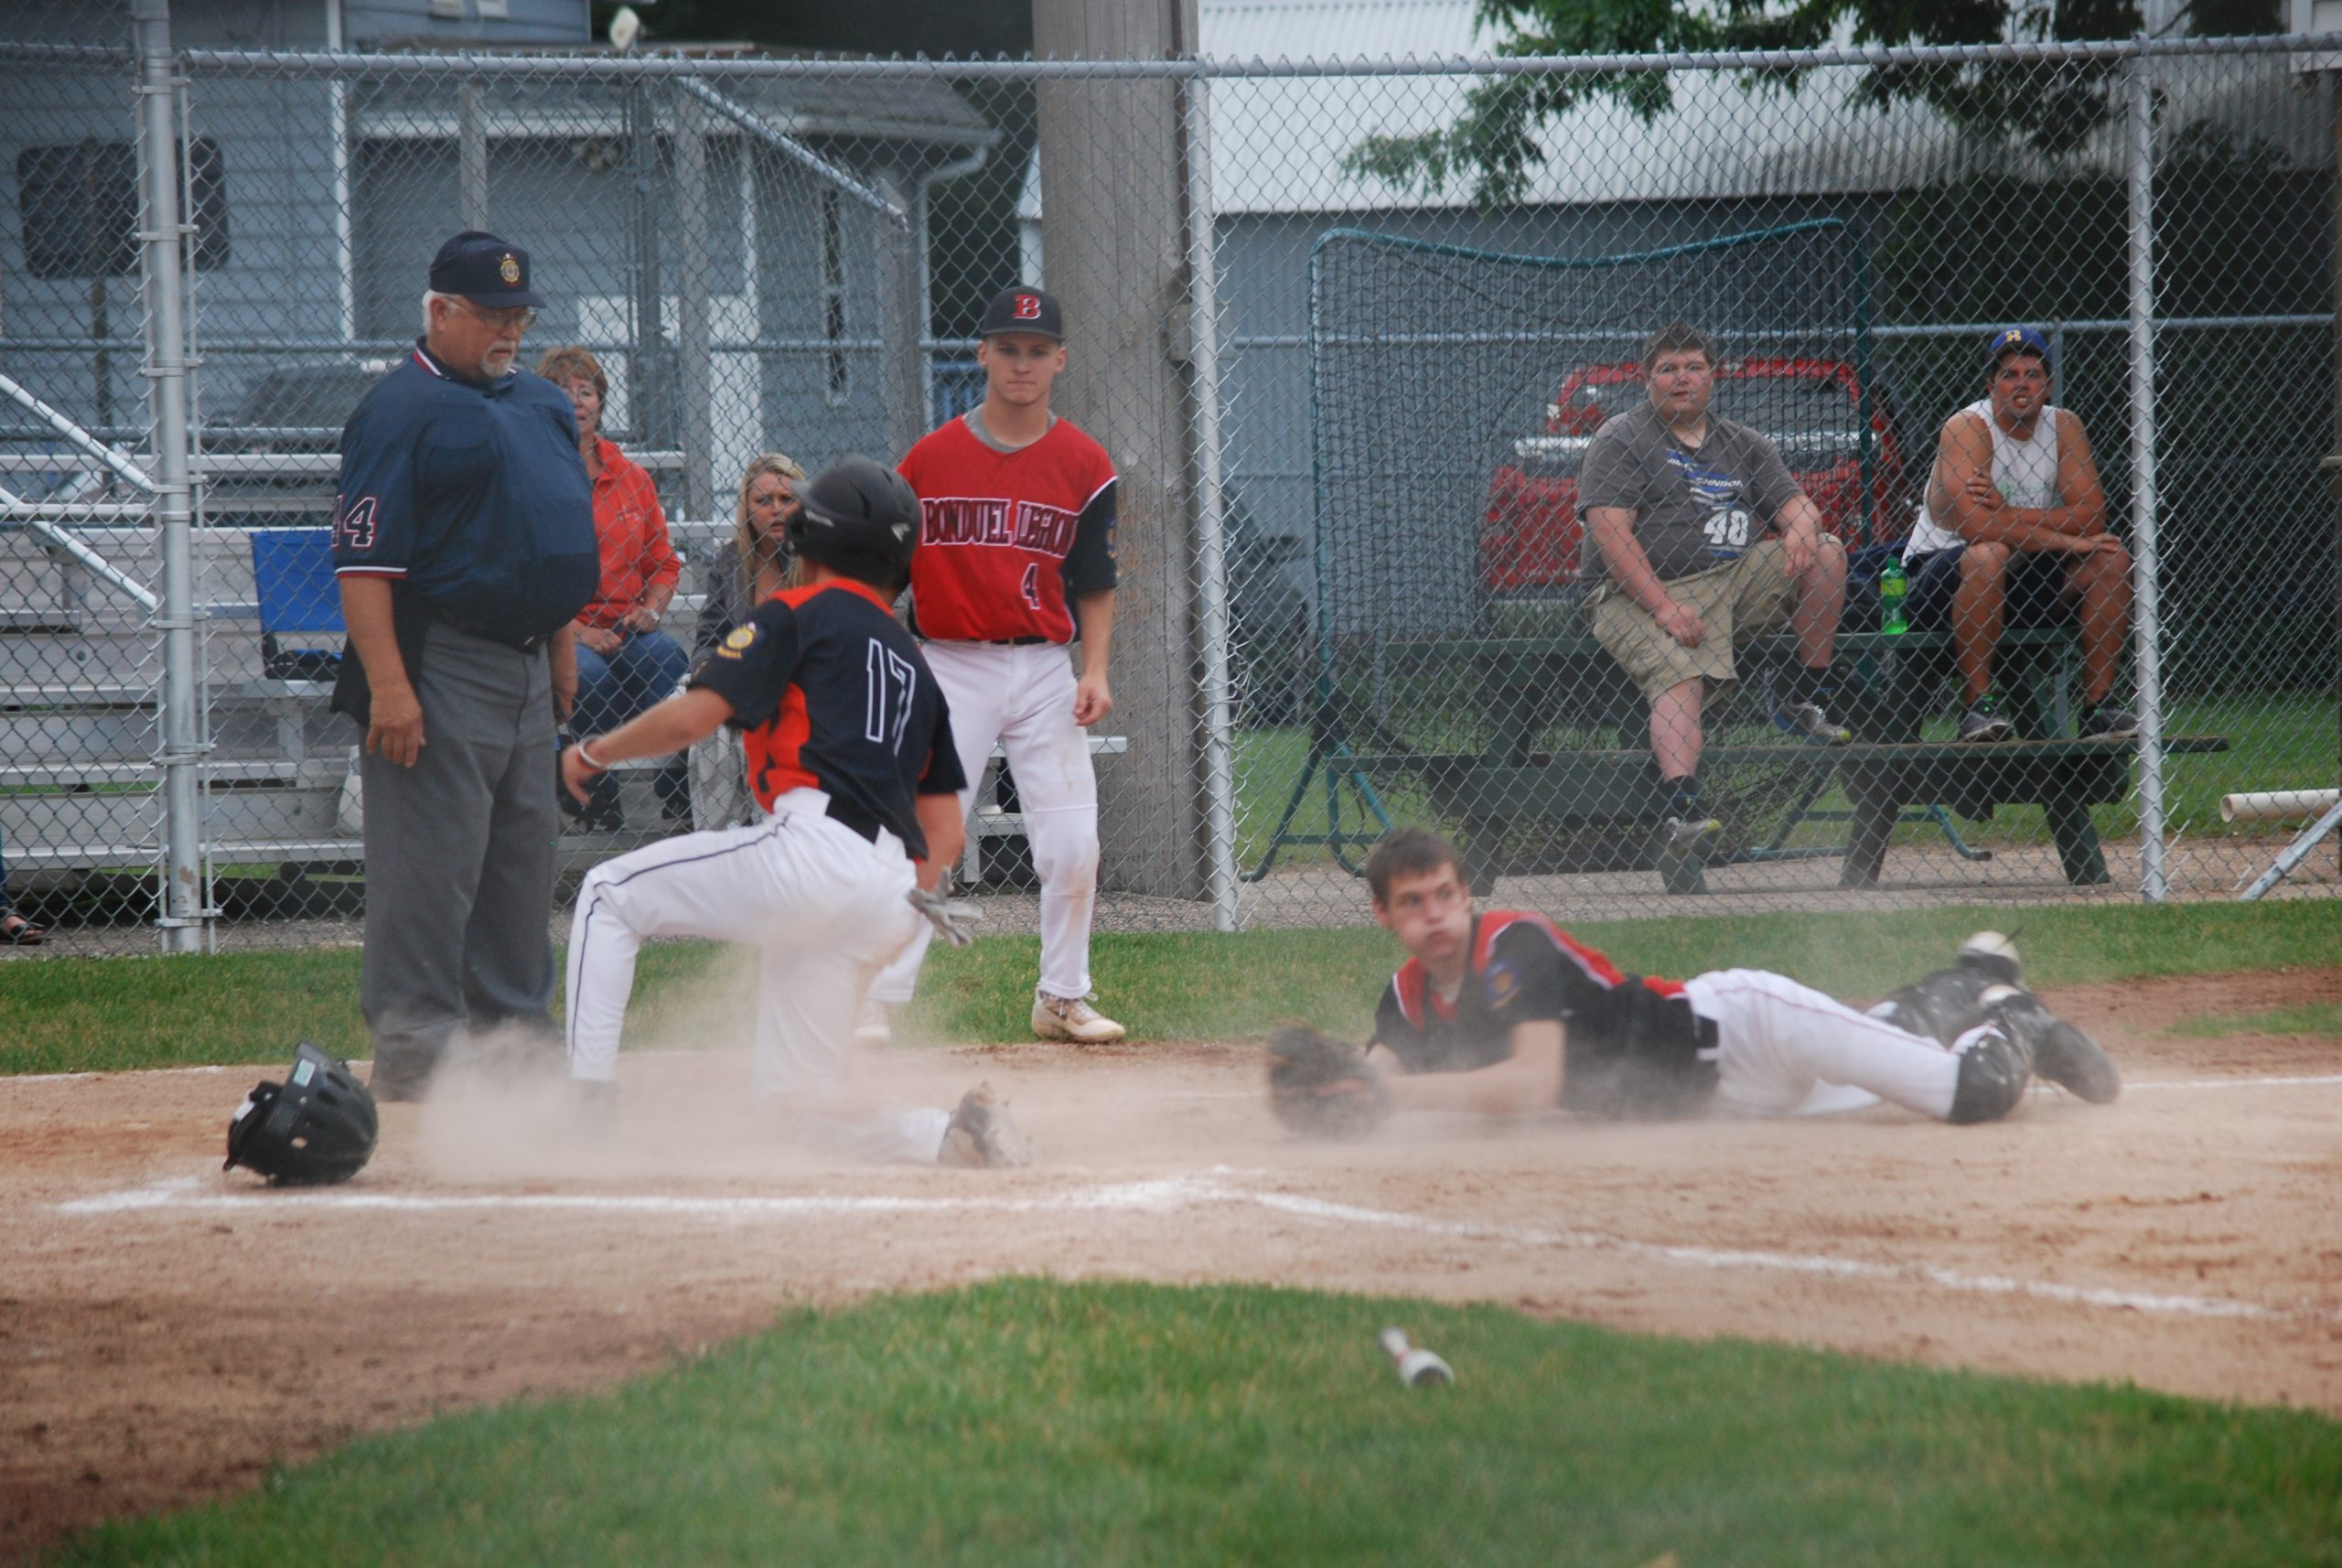 Legion Baseball: Vollmer dominant as Clintonville shuts out Bonduel